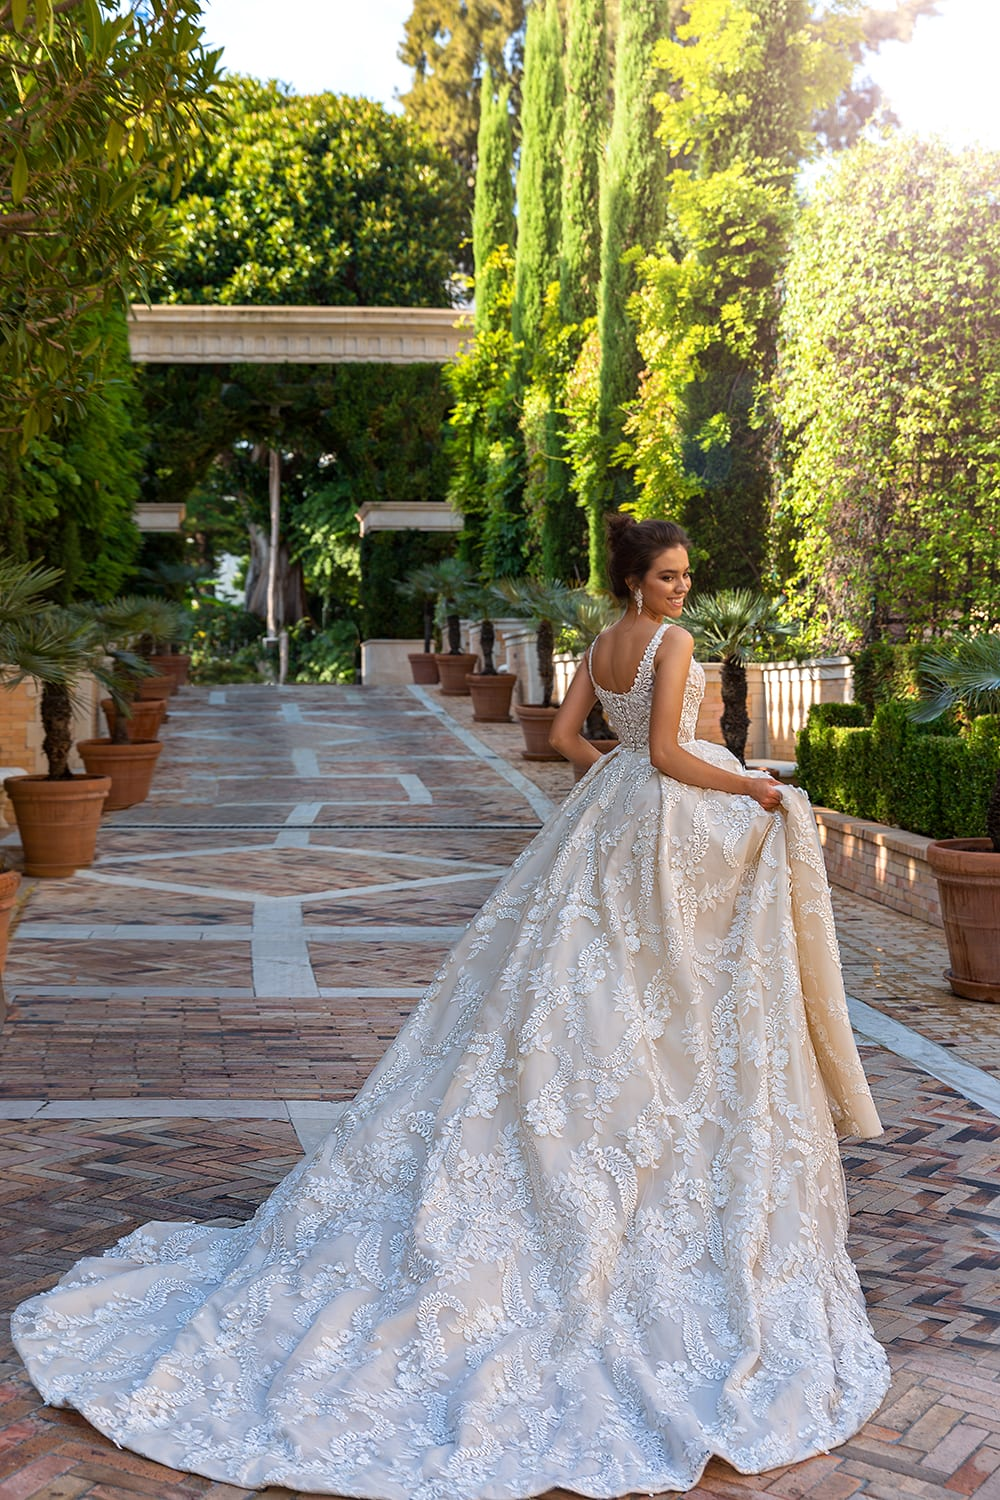 Beautiful Wedding Gown Ideas For Women